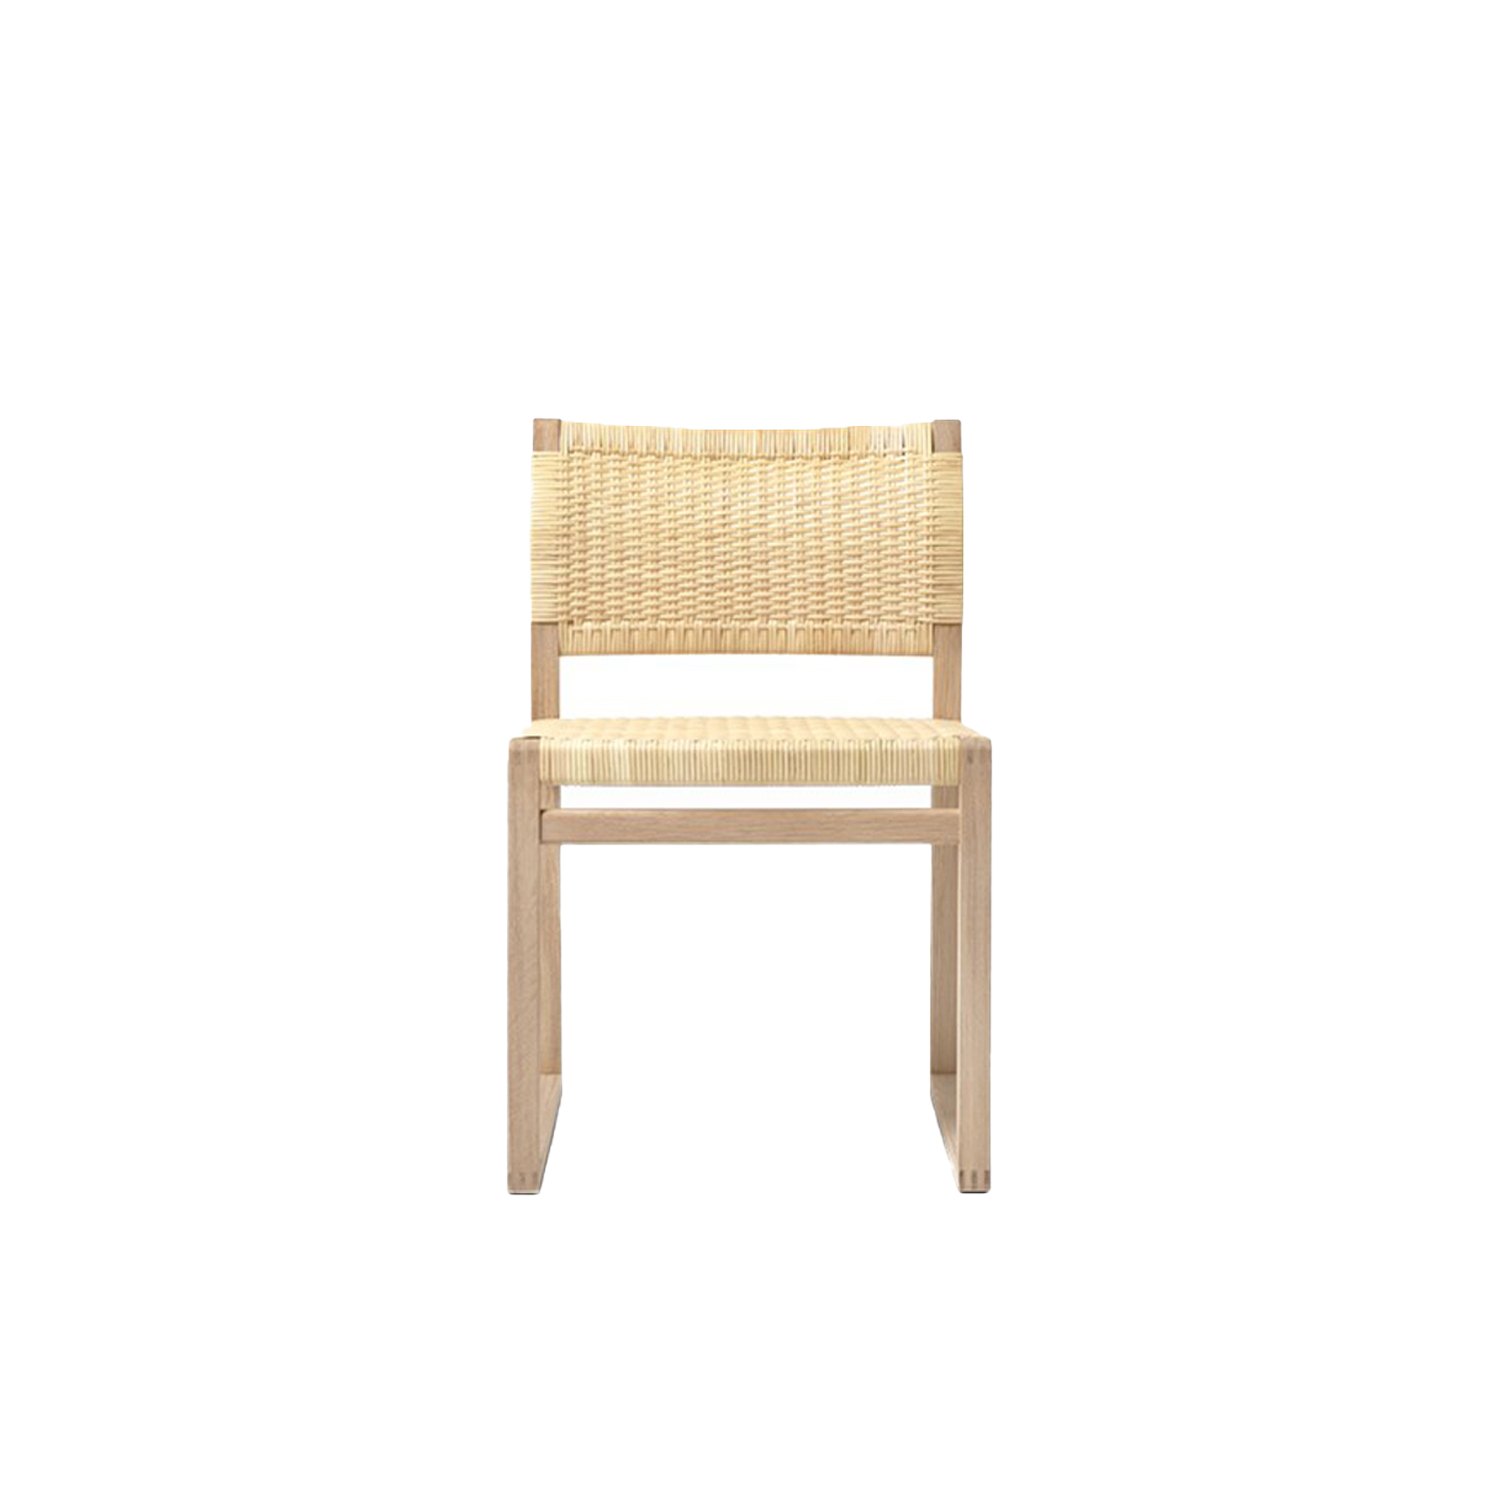 BM61 Chair Cane Wicker - Børge Mogensen brings us back to nature with the choice of cane wicker or linen webbing coupled with a solid wood frame. In a slender design involving only what's crucial to the construction. By carefully calibrating the angle of the back rest, it's a simple yet striking dining chair that's comfortable before, during and after dinner.  Two versions in two different natural materials attest to Børge Mogensen's talent for pared-down shapes elegantly engineered for comfort. Dispensing with anything extraneous in favour of clean lines in a pure, iconic design that defies any temporary trend.   Both the BM61 Chair and the BM62 Armchair exude a certain authenticity. Designed with an exposed construction that reveals immaculate joinery and hand craftsmanship. Along with the choice of honest materials, such as natural cane wicker or linen webbing in natural or black for the seat and back together with a solid wood frame. It all reflects our expertise in materiality since our inception.   One glance at the chair in profile and you'll notice a slight angle to the rear post, which changes to provide optimal support for the back. With the lower section supporting the small of the back in an upright position, and the upper part providing support in a more relaxed position. What's more, the sledges not only ensure continuity, they're the perfect choice for soft floors.   As a dining chair, the BM61 Chair and BM62 Armchair are a comfortable seating solution for before, during and after dinner. Ideal for top-star restaurants, hotels and private homes. Choose the side chair or armchair, and you have a statement piece that is suited for galleries, museums and cultural centres. Luxury retail and residential settings, executive environments and more.  | Matter of Stuff